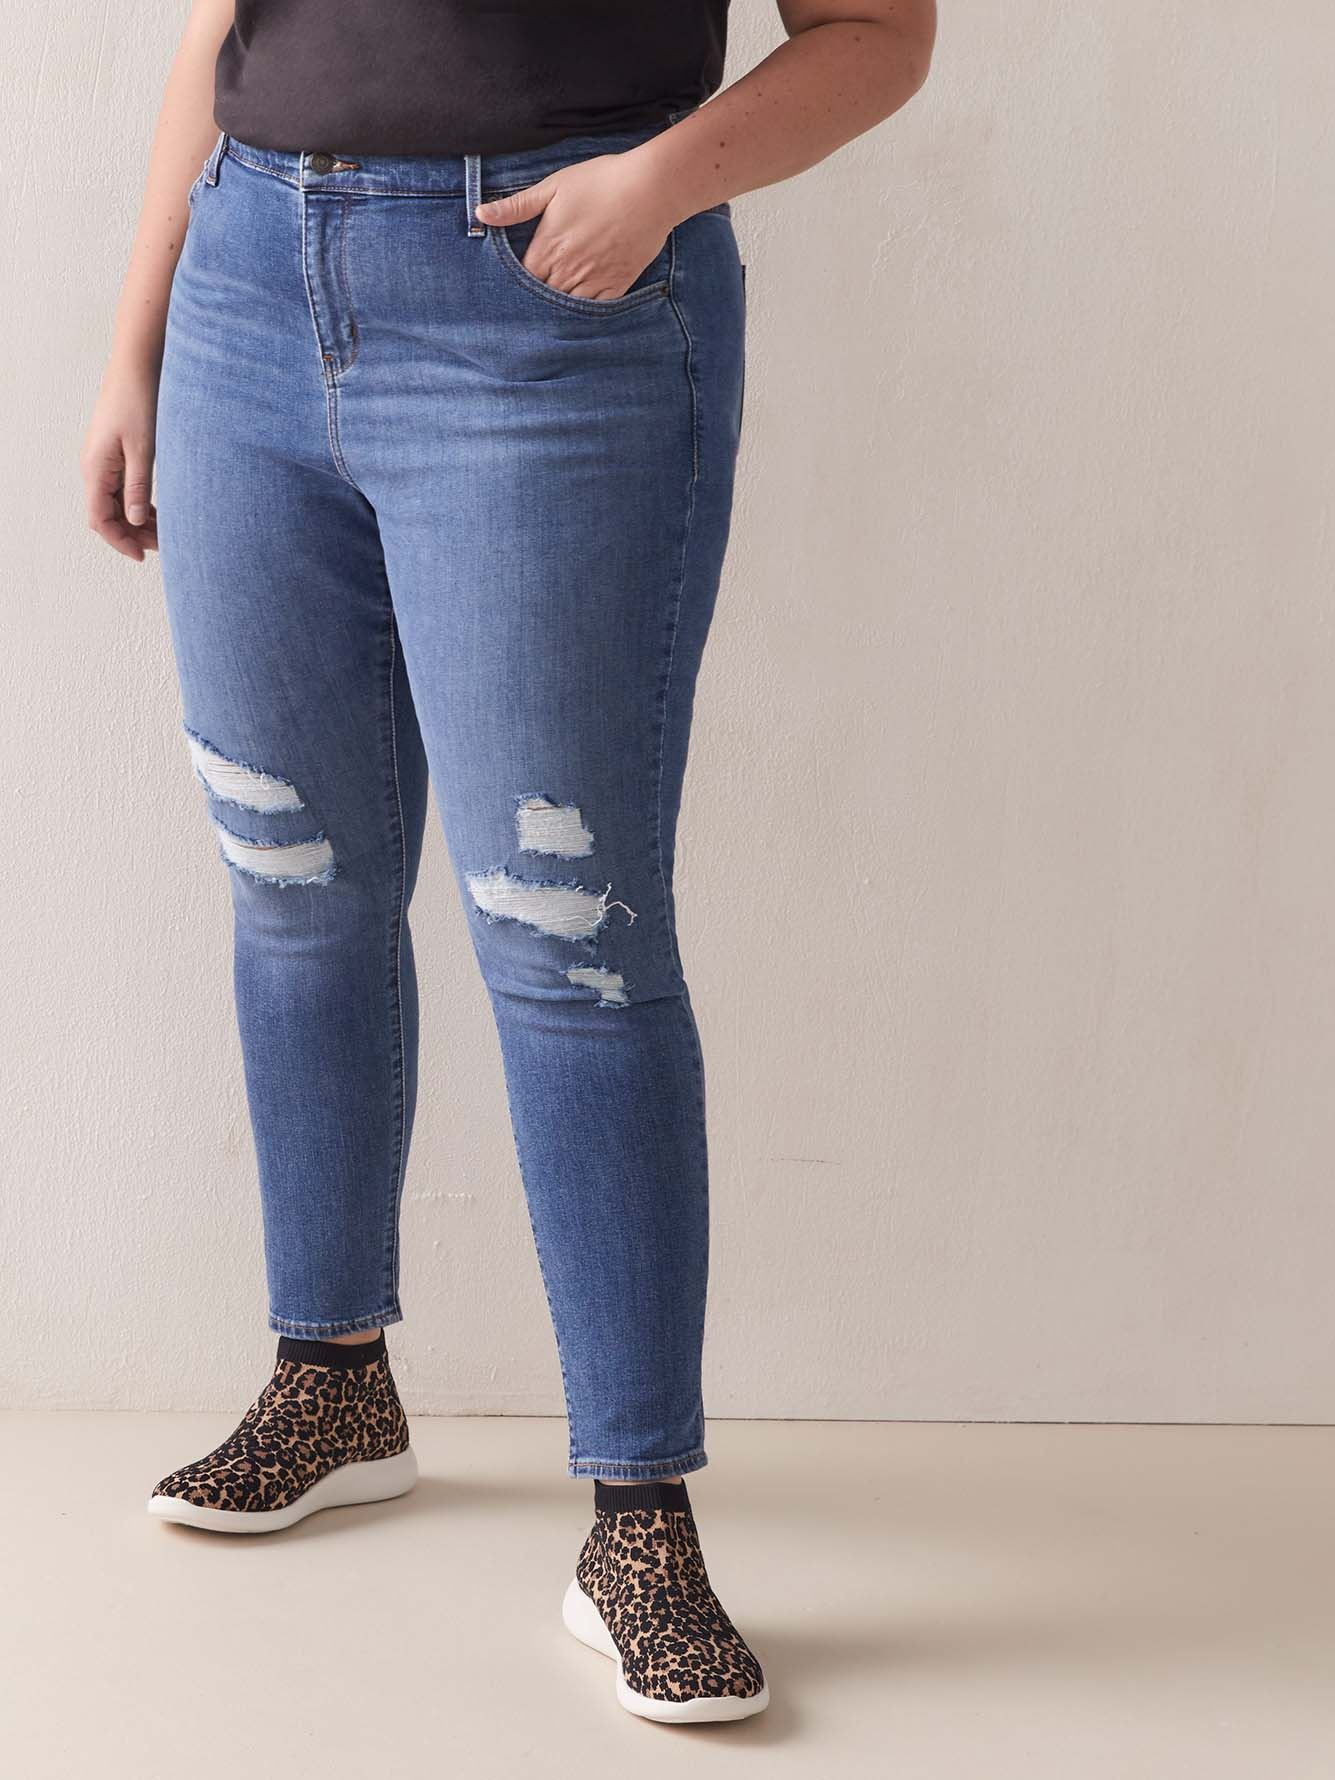 Stretchy High-Rise 721 Rip and Repair Jean - Levi's Premium